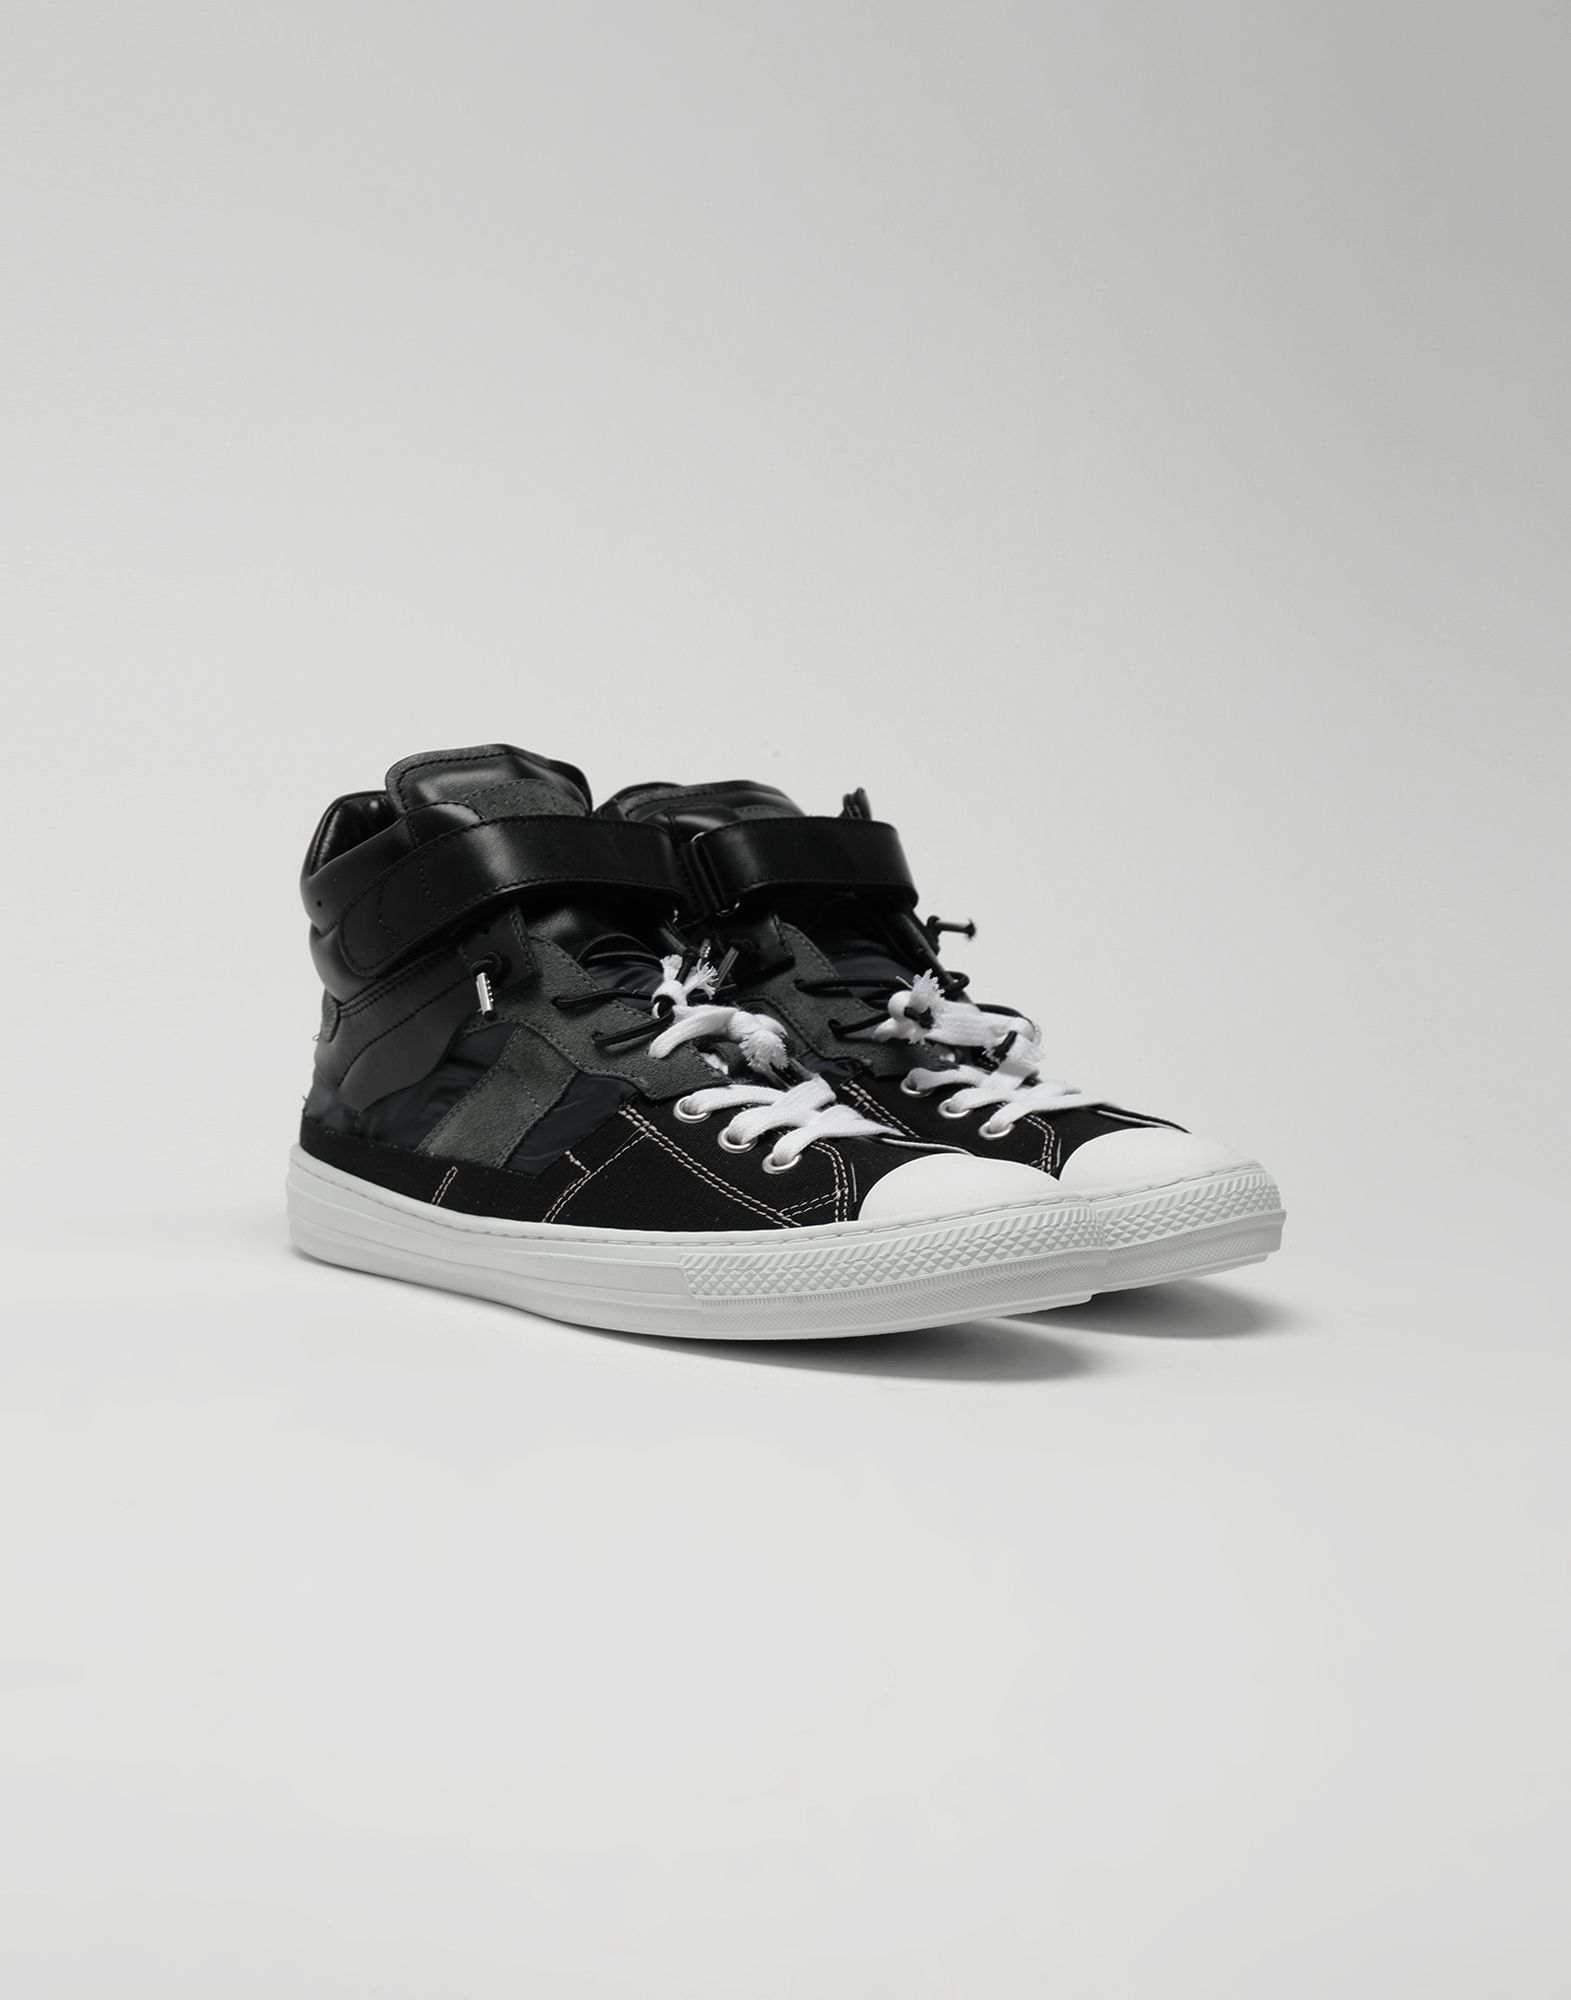 MAISON MARGIELA Spliced high top sneakers Sneakers Man r